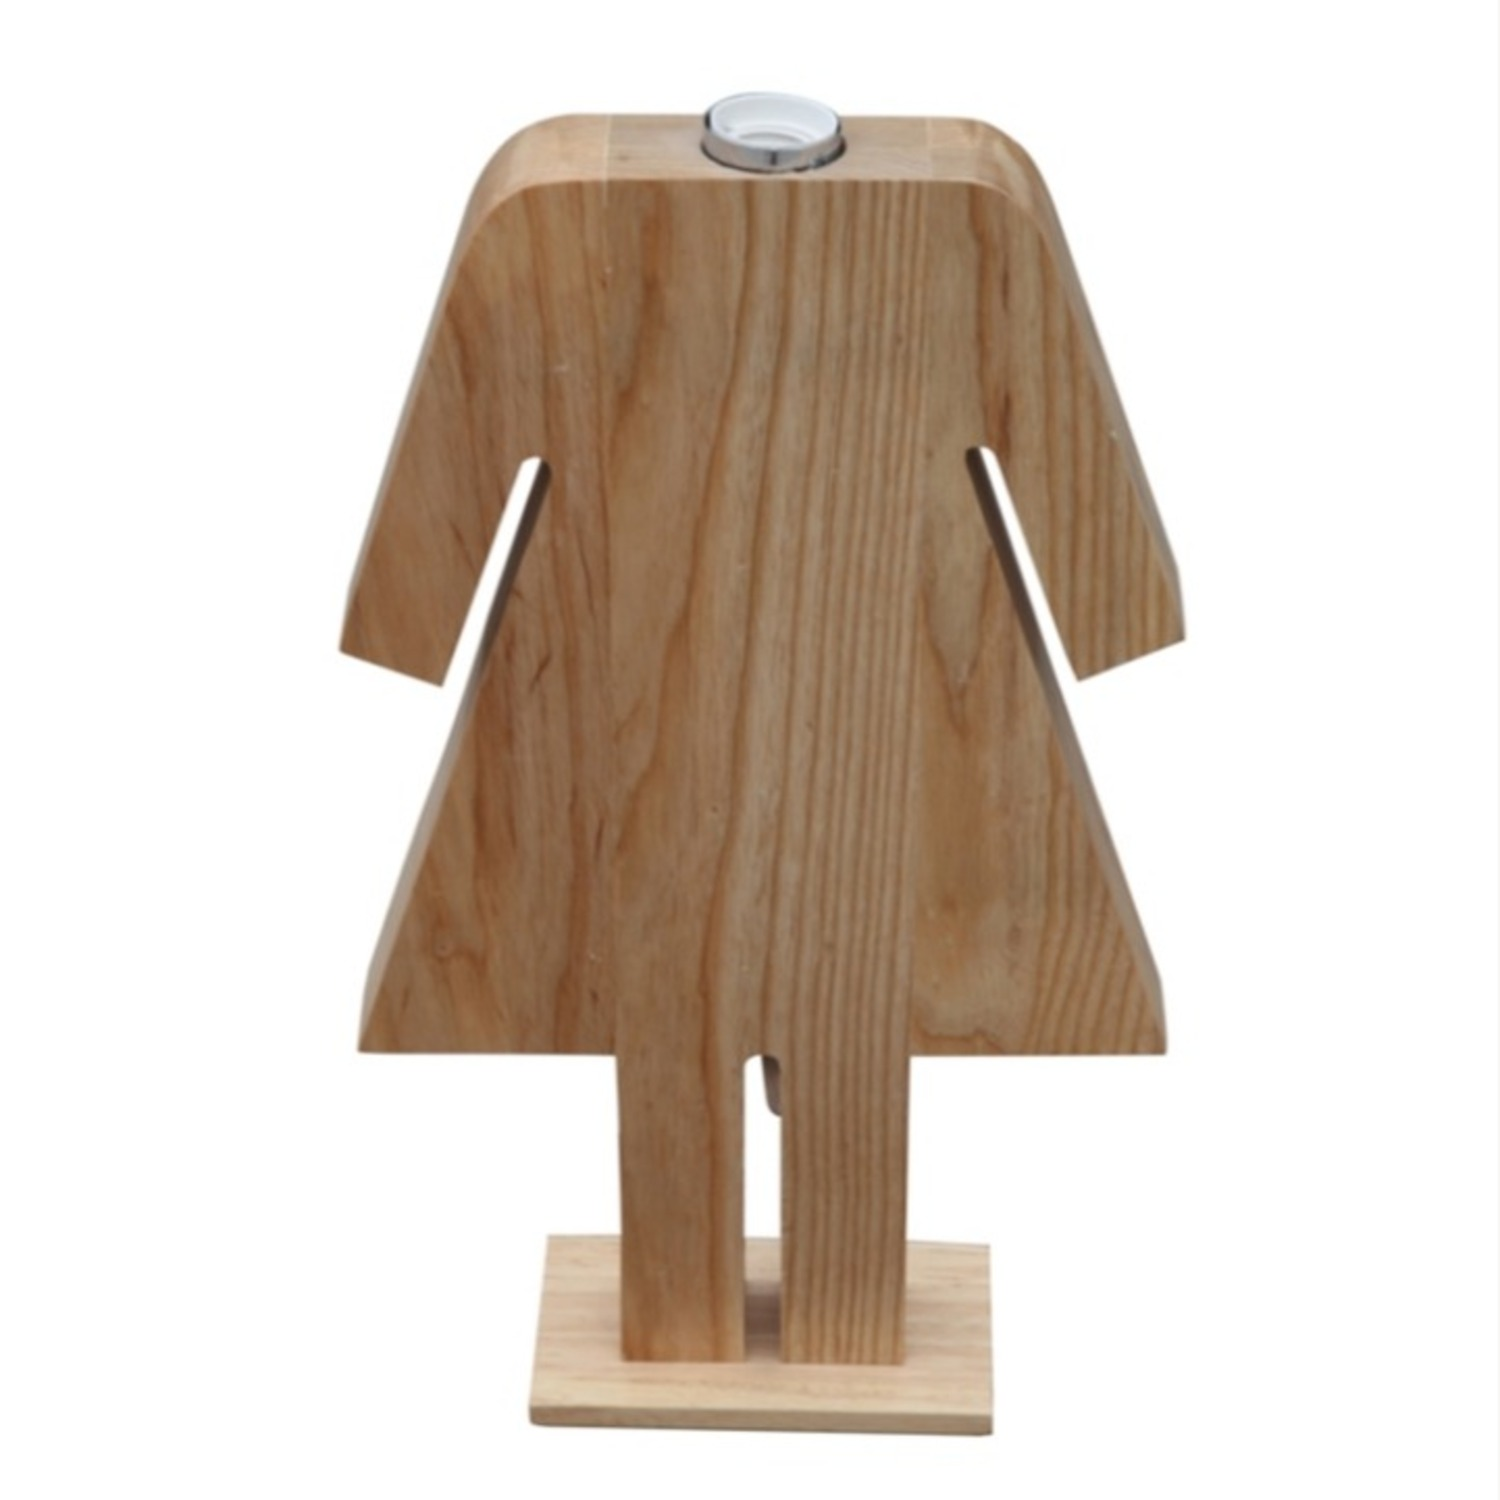 Table Lamp In Natural Wood W/ Female Person Design - image-4